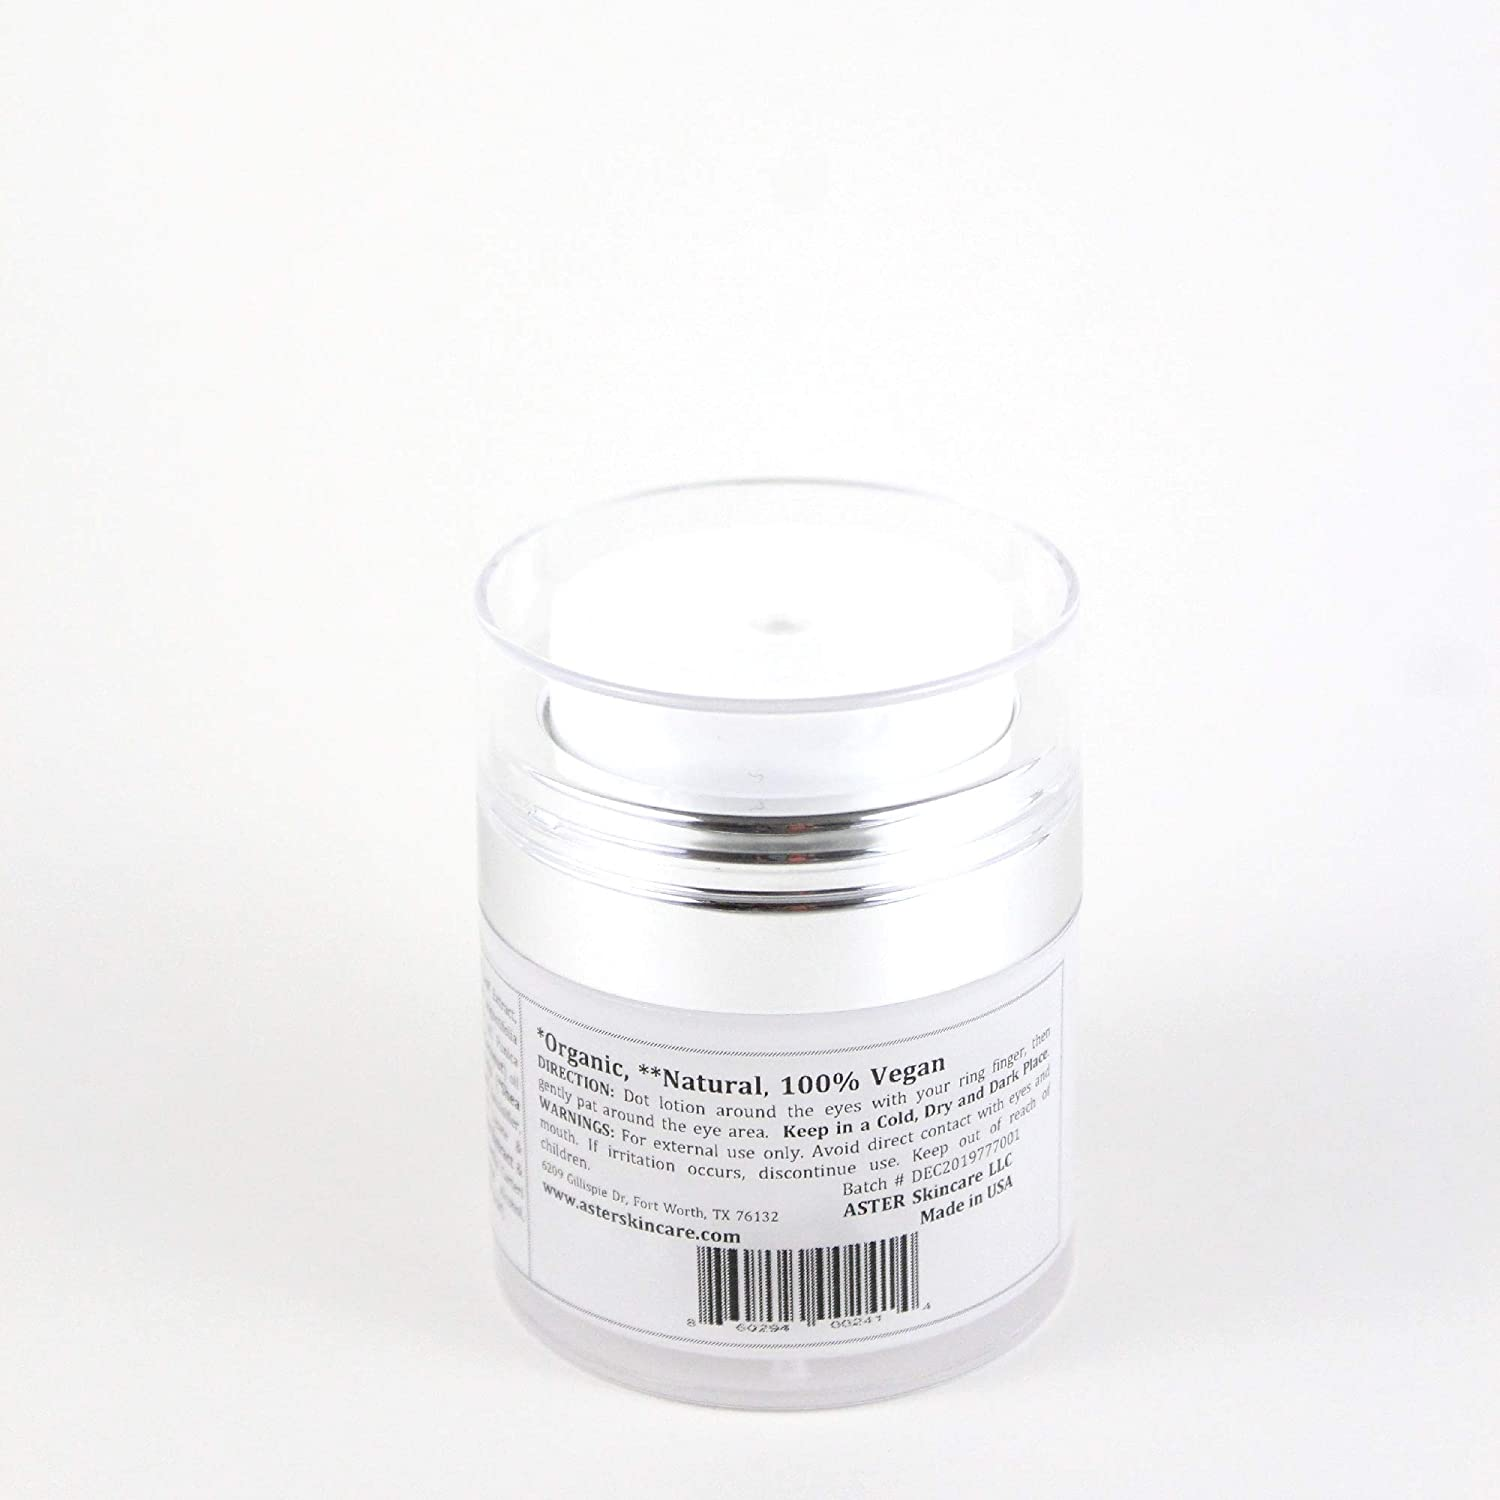 Aster Skincare Hydrating Firming Eye Day Cream with Probiotics Caffeine